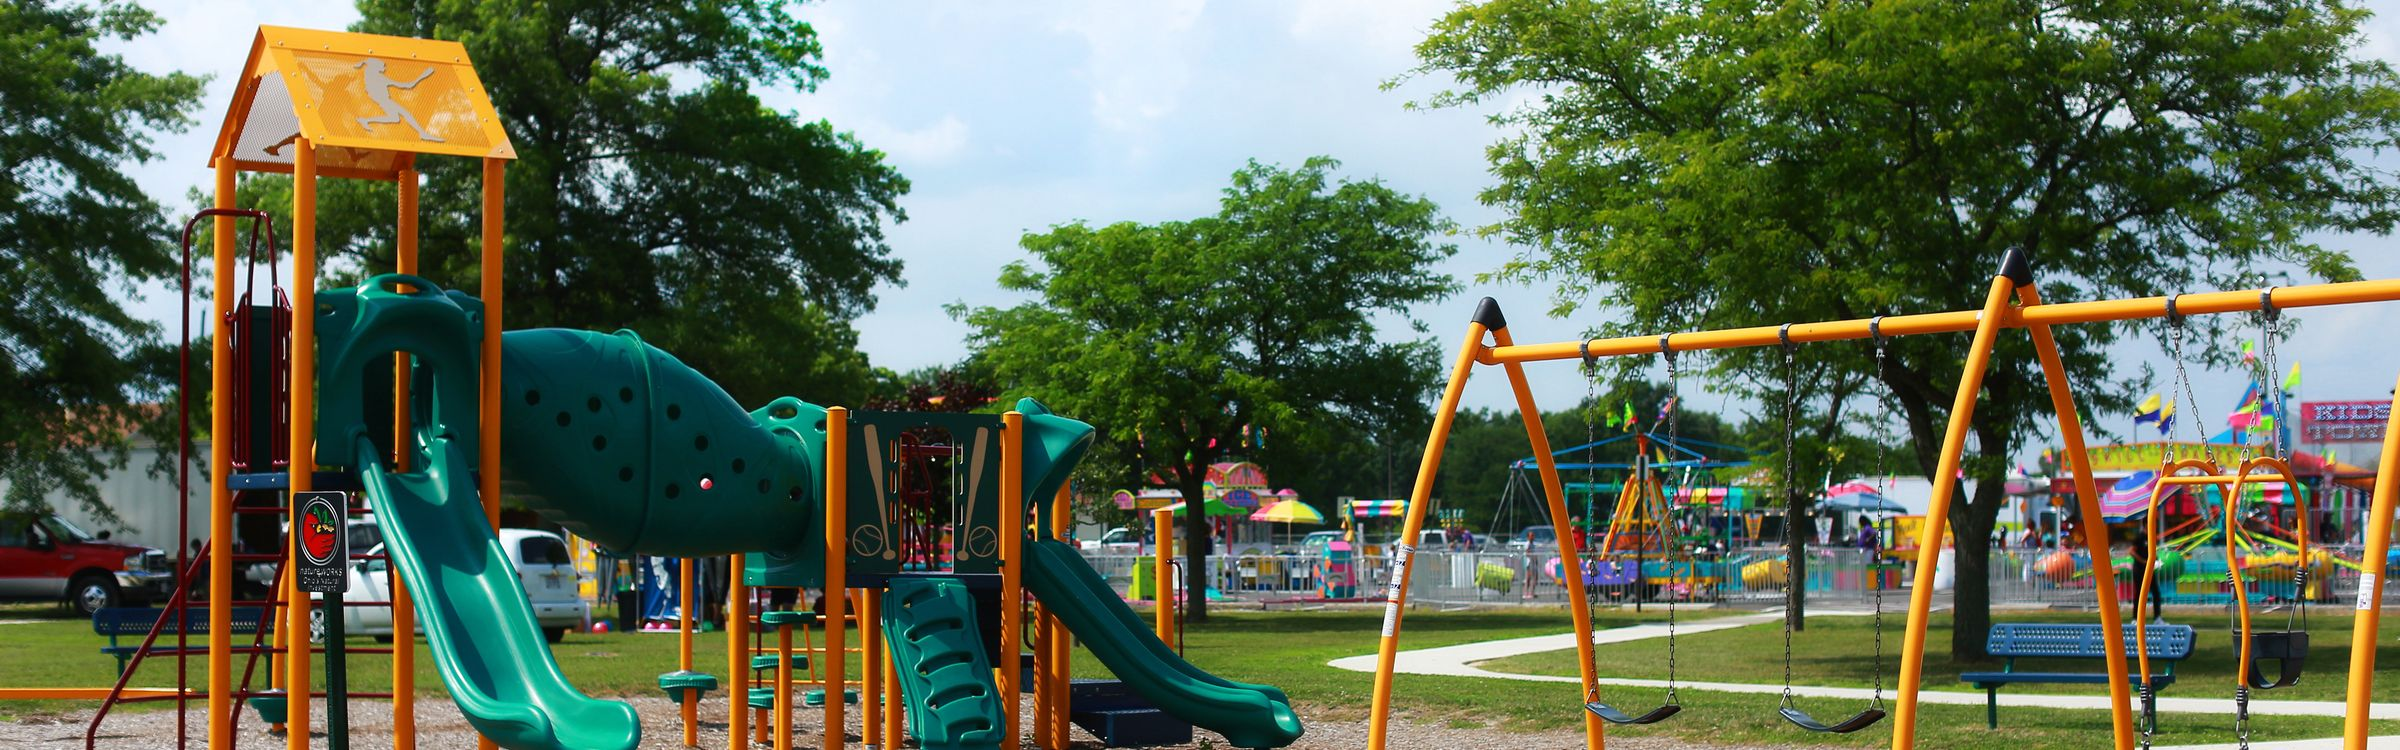 OUR Parks